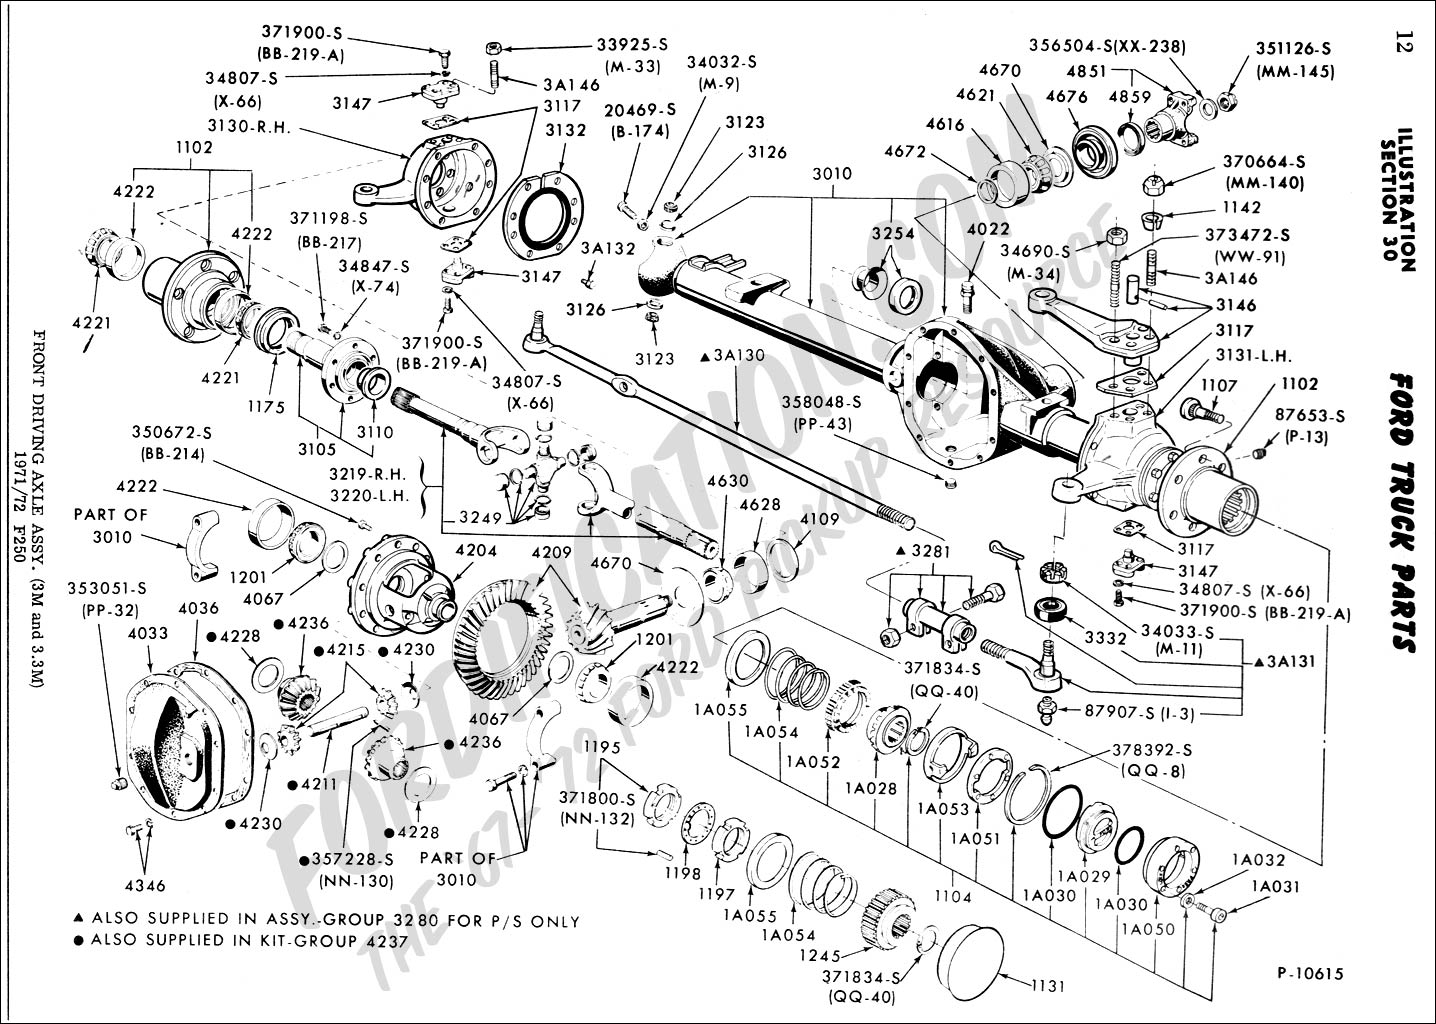 2004 Honda 350 Rancher Wiring Diagram Reveolution Of 2002 2000 Ford F250 Super Duty 4x4 Front Axle With Carburetor